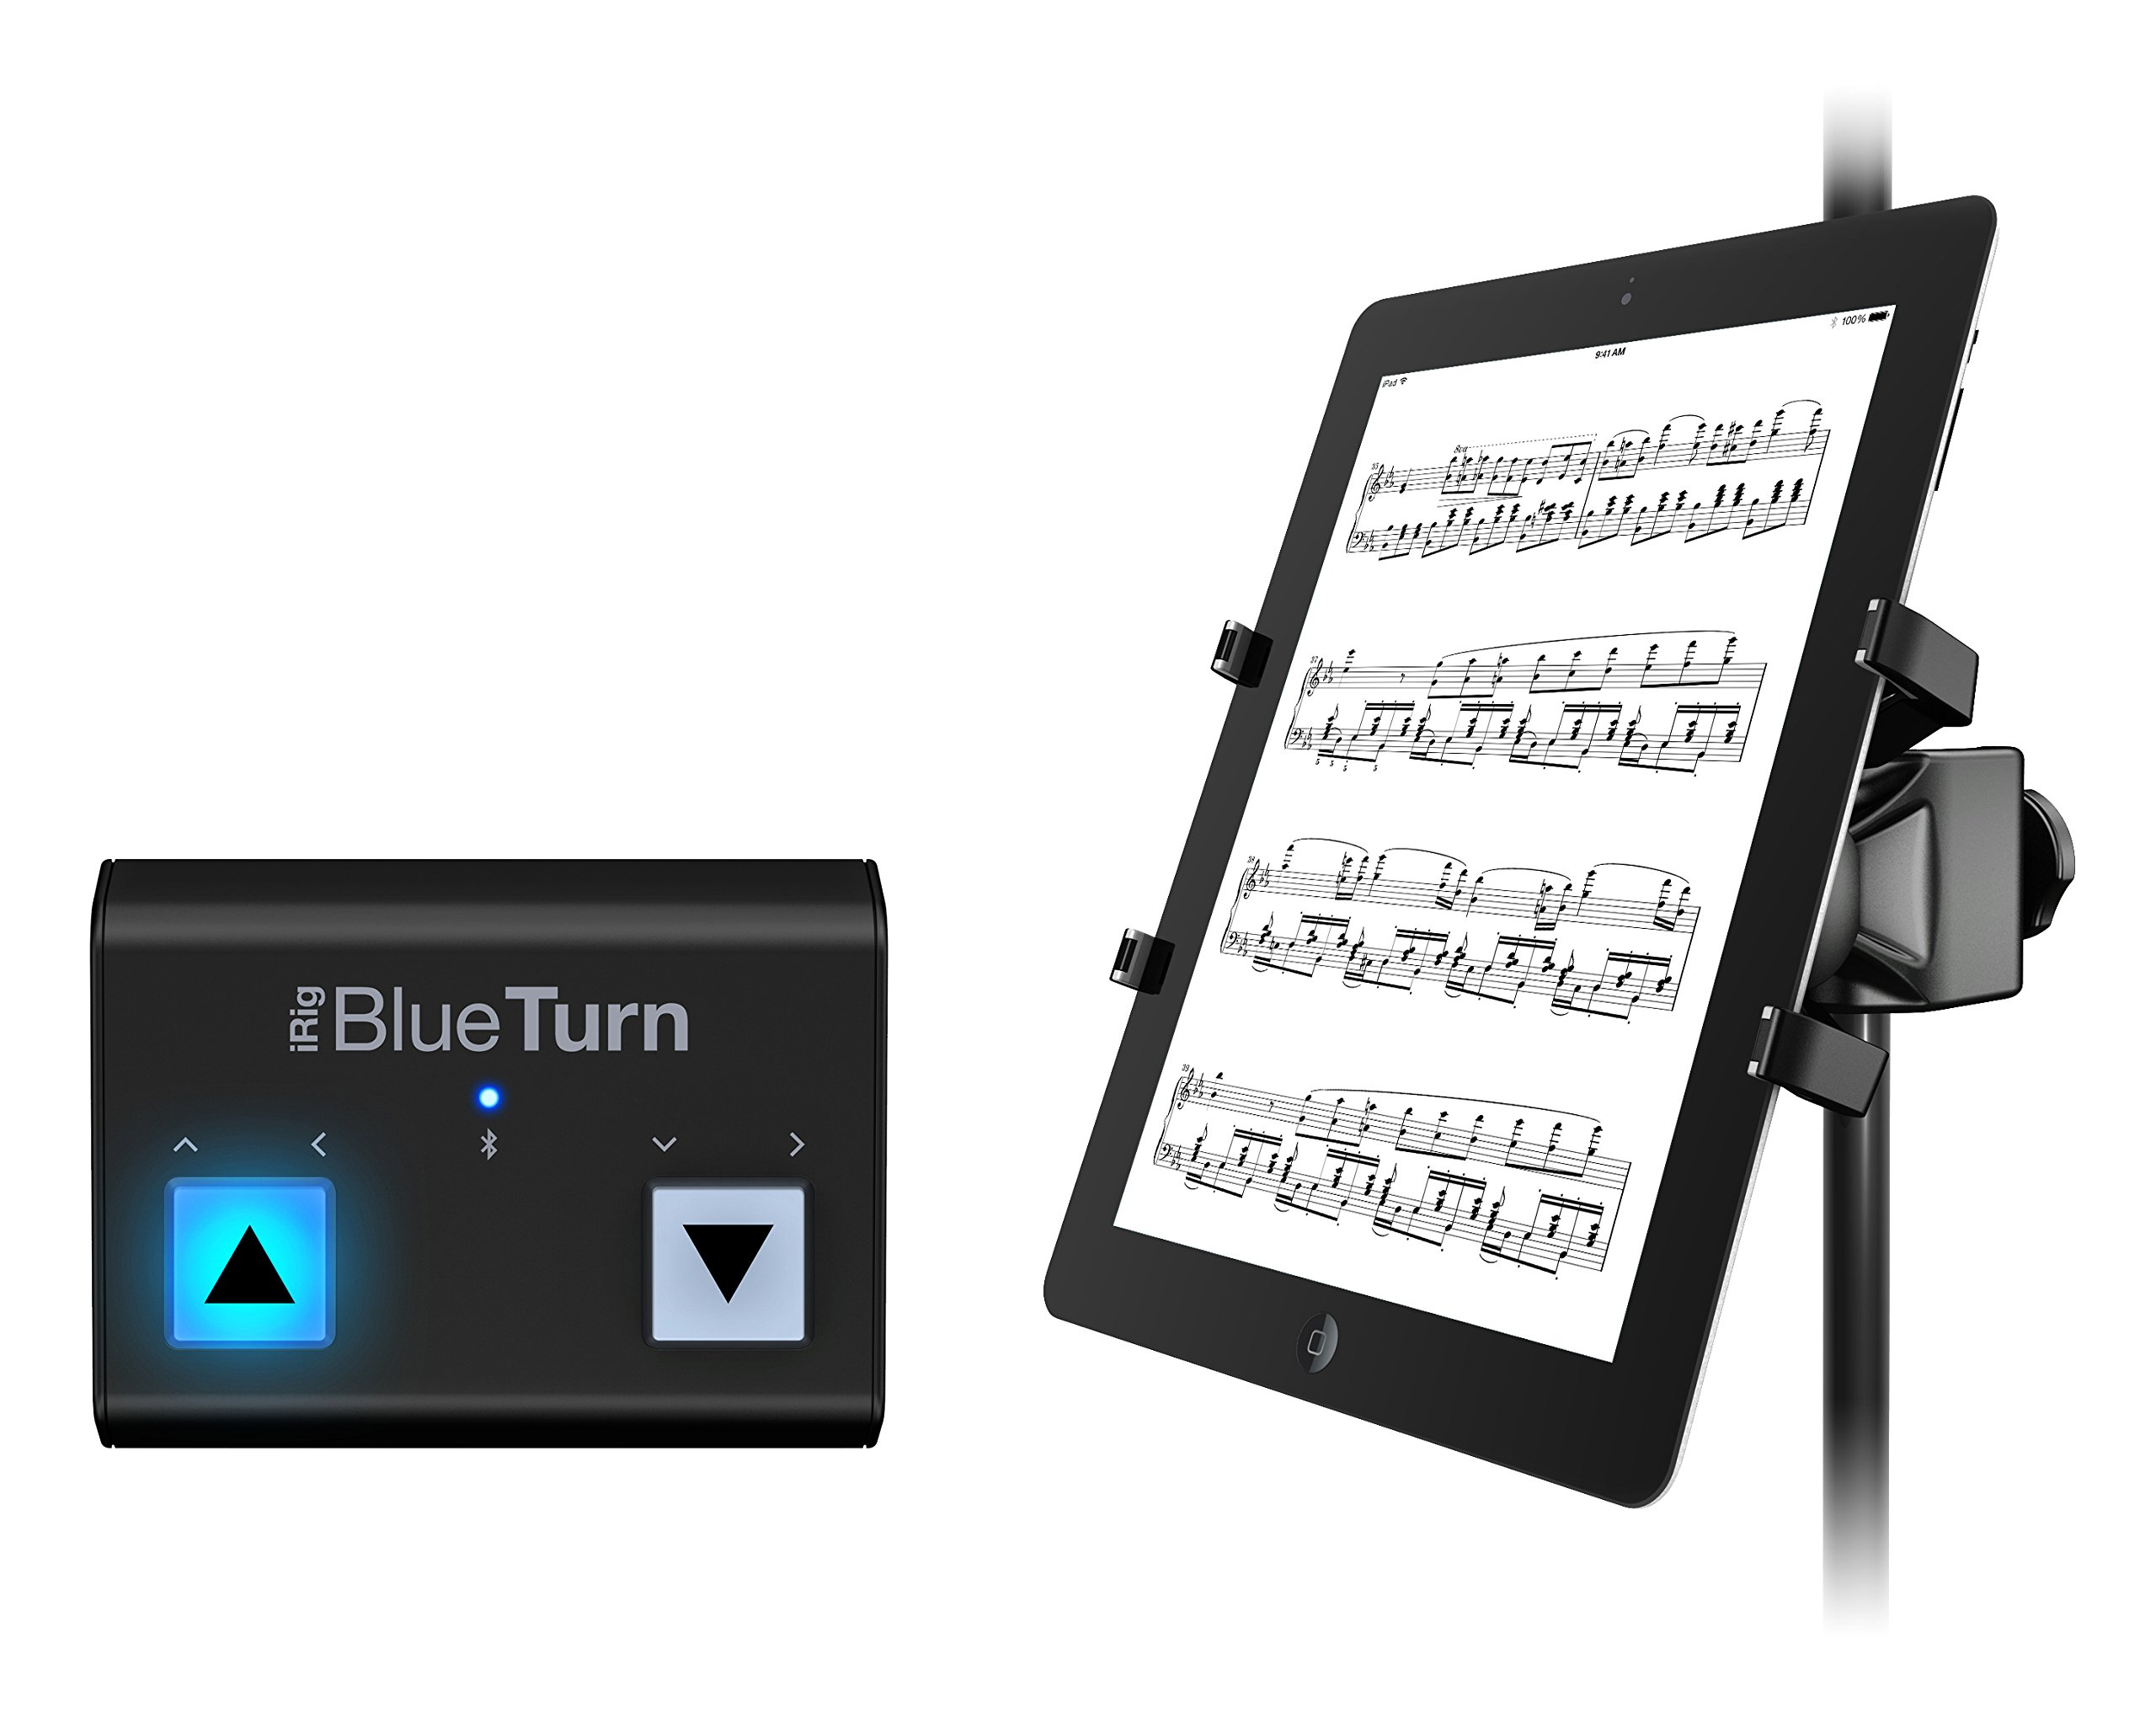 IK Multimedia Tablet Page Turner Bundle includes wireless page turner and microphone stand mount